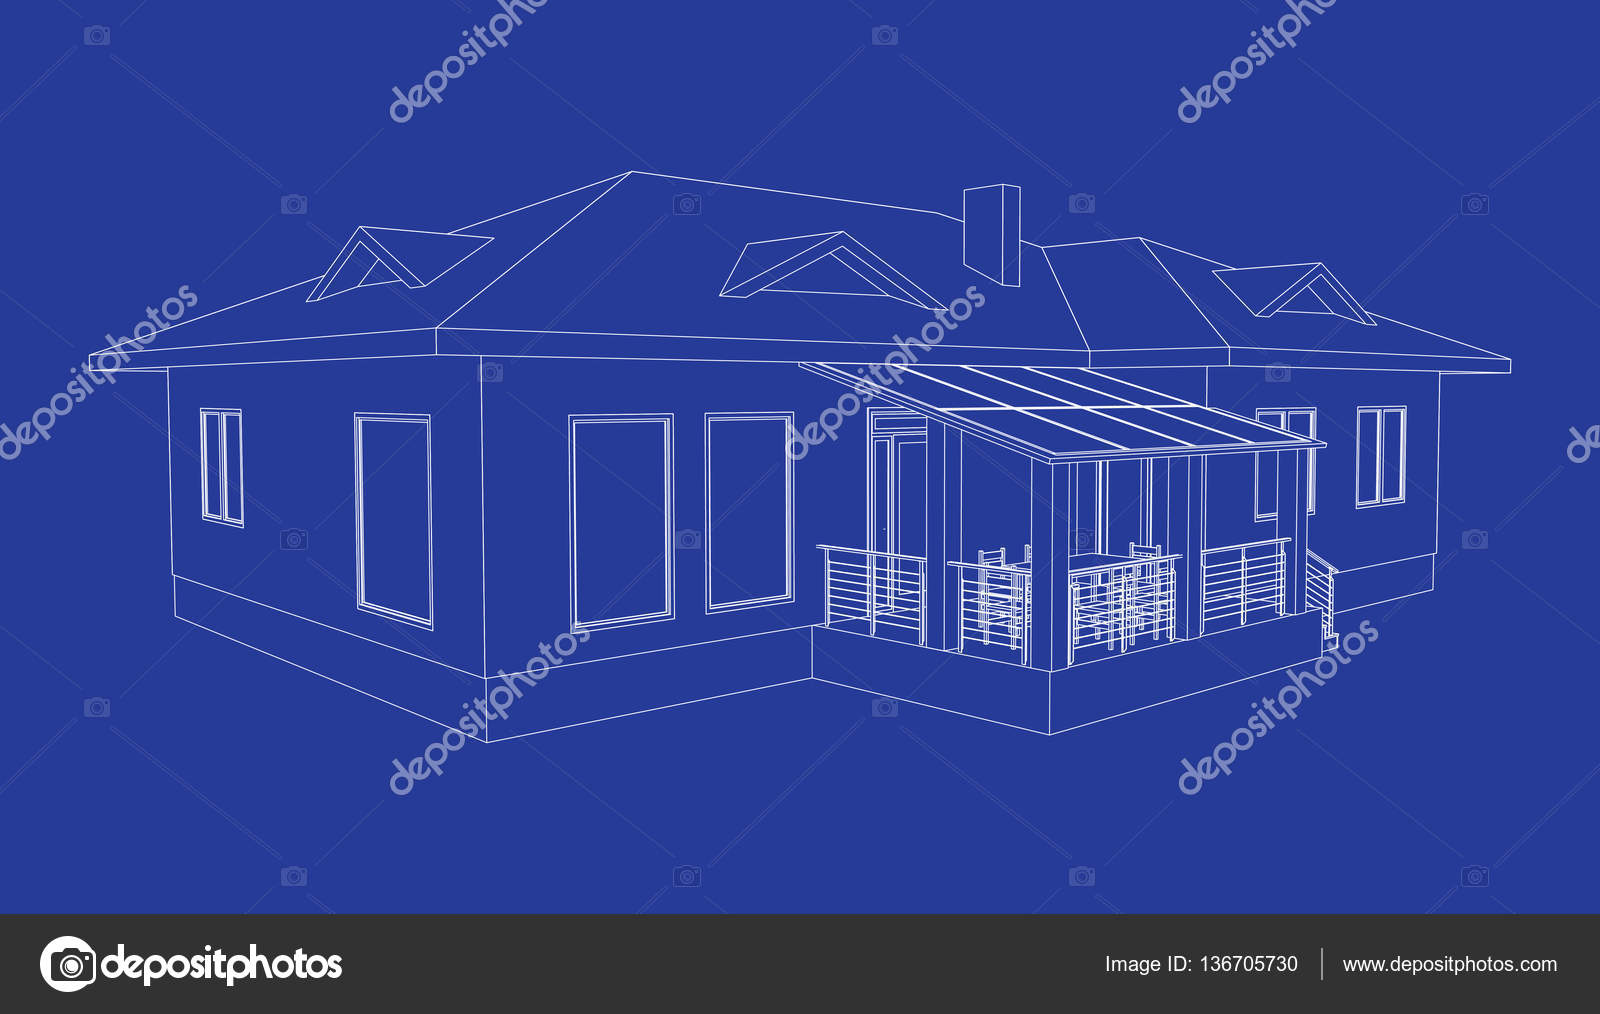 Building perspective 3d drawing of the suburban house outlines building perspective 3d drawing of the suburban house outlines cottage on blue background house 3d model perspective vector cottage blueprint eps 10 malvernweather